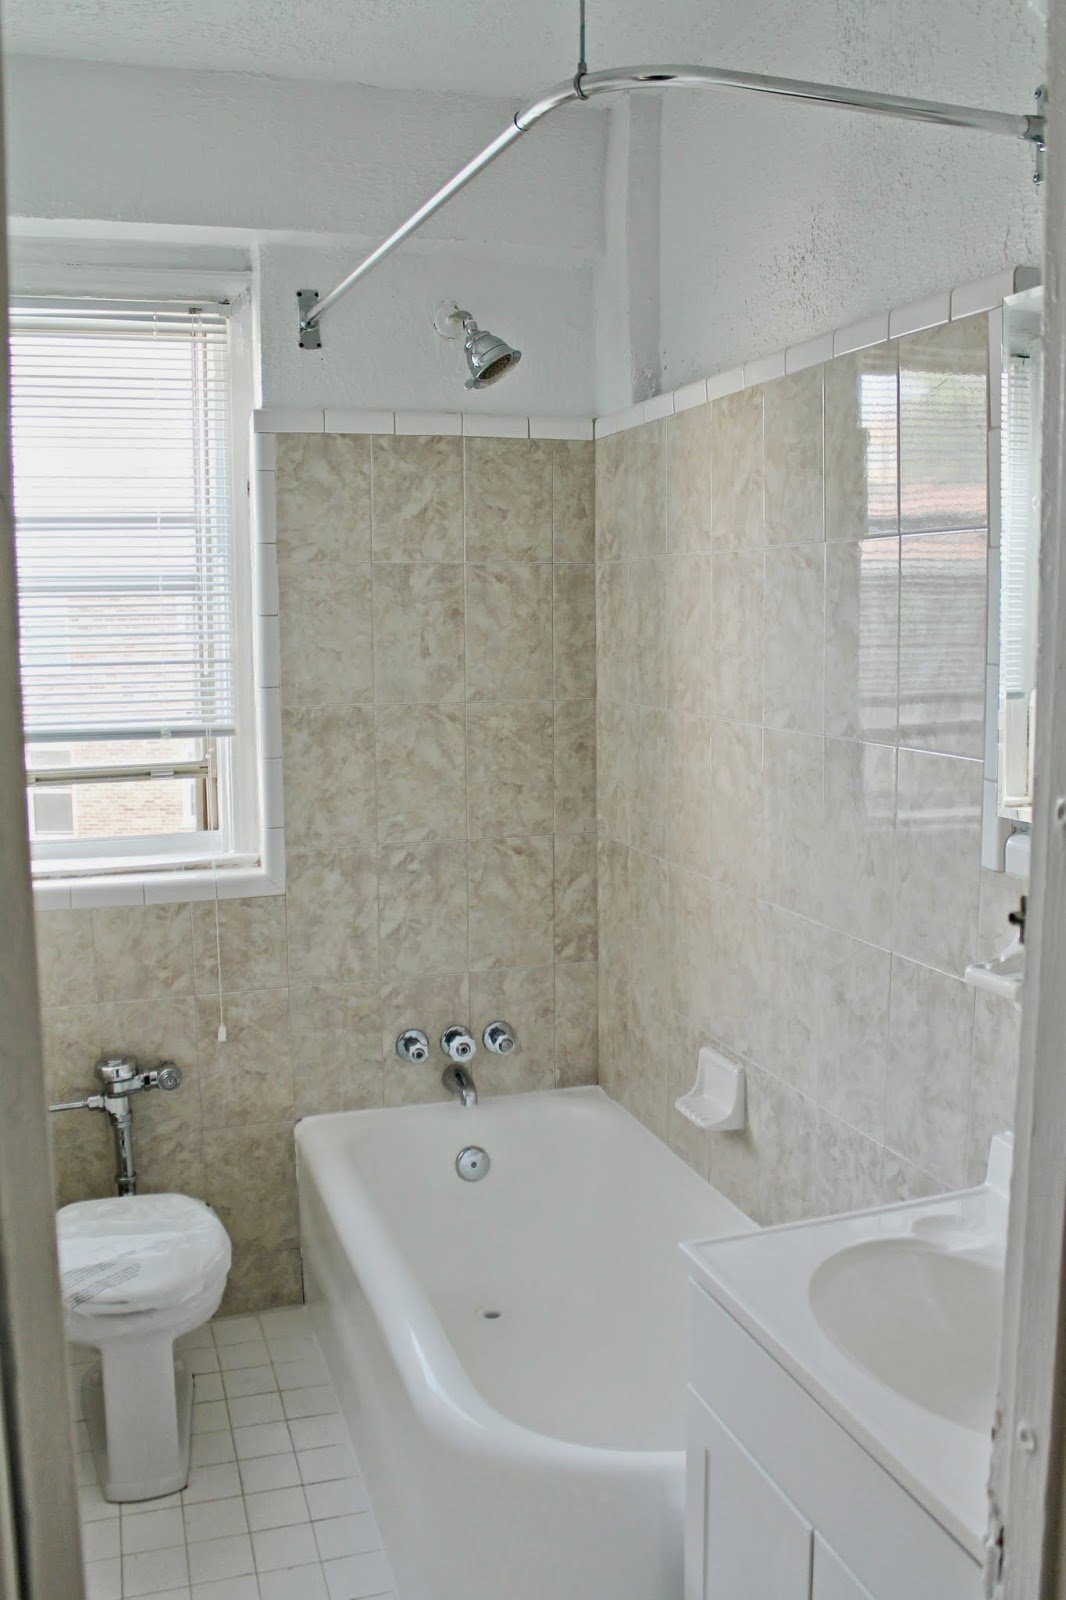 Bathroom plans tips for updating a rental bath shannon for Bathroom ideas for renters